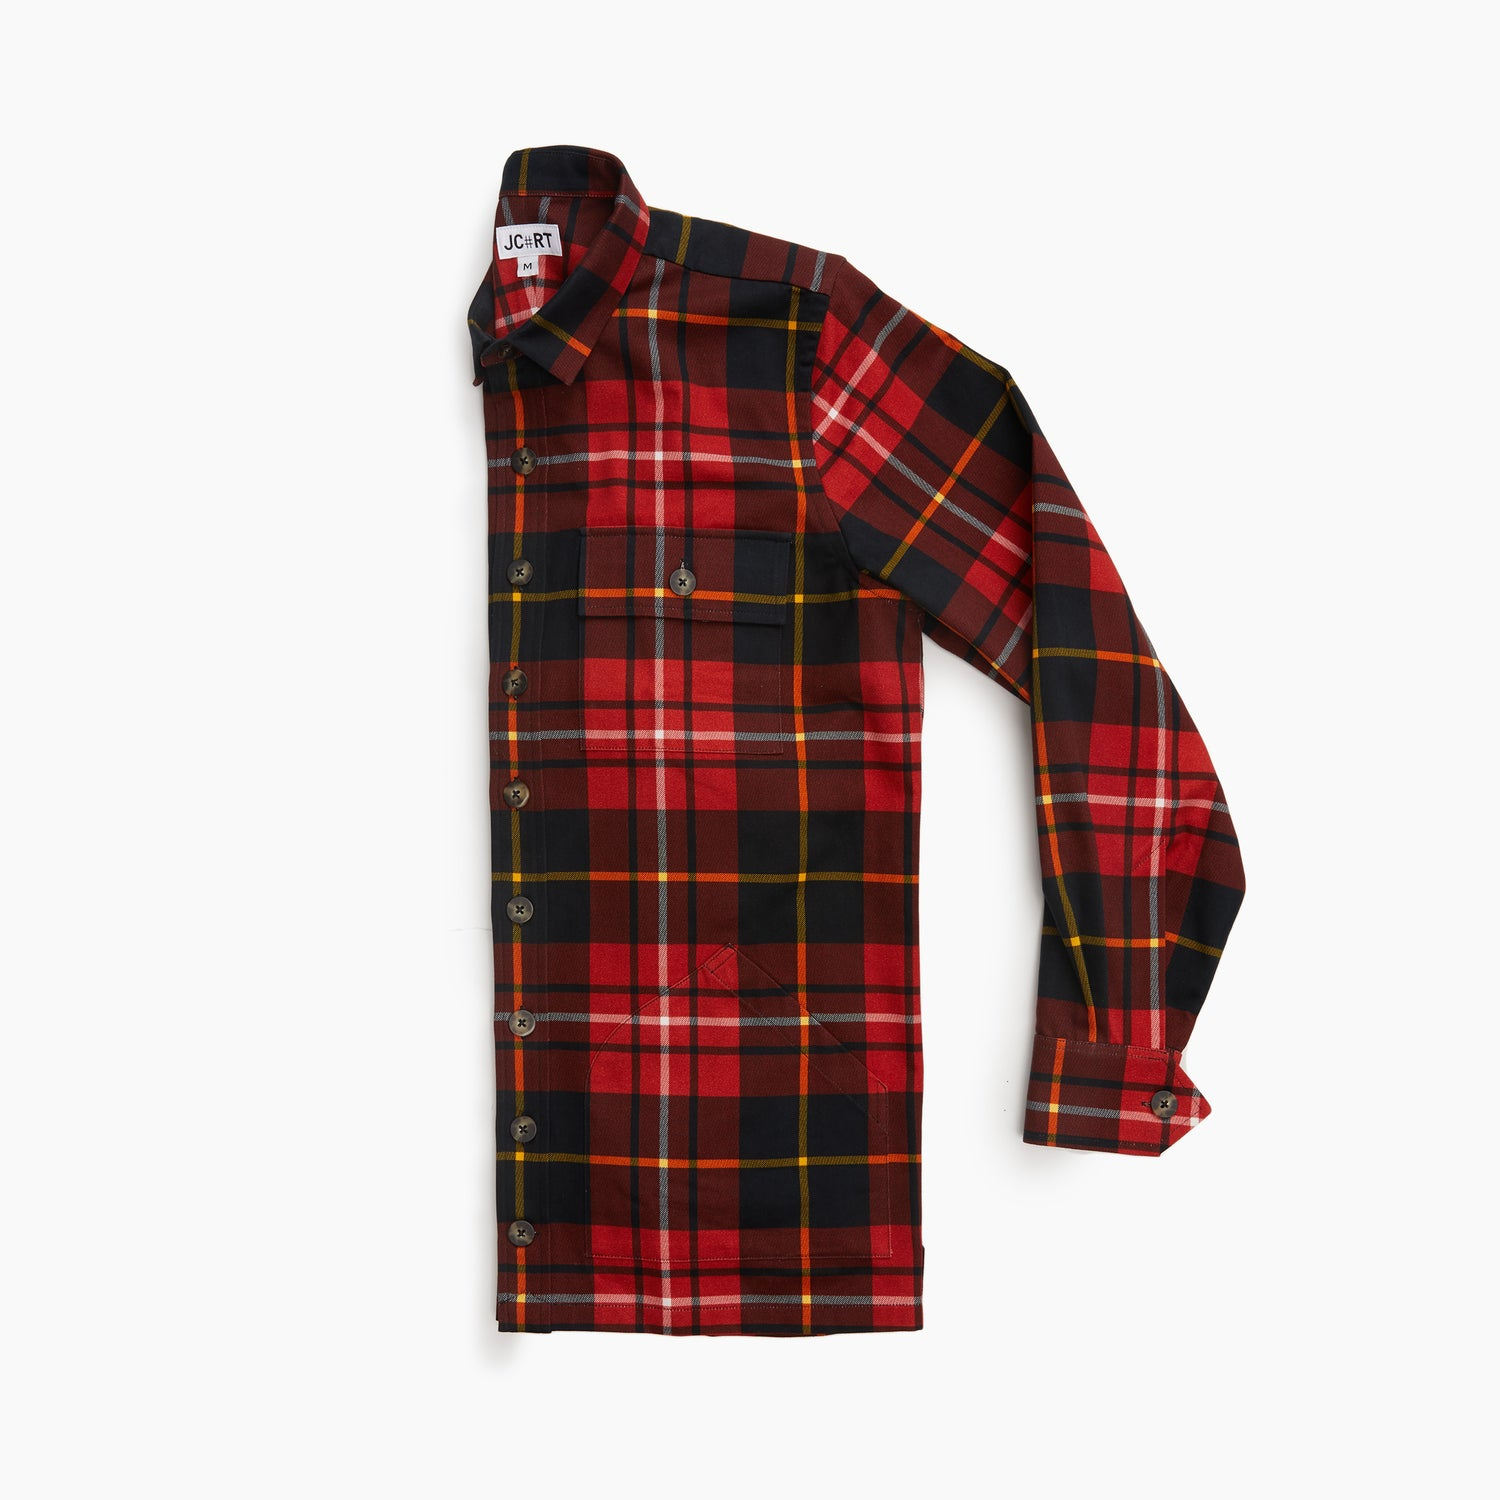 The Smith Plaid Shirt Jacket